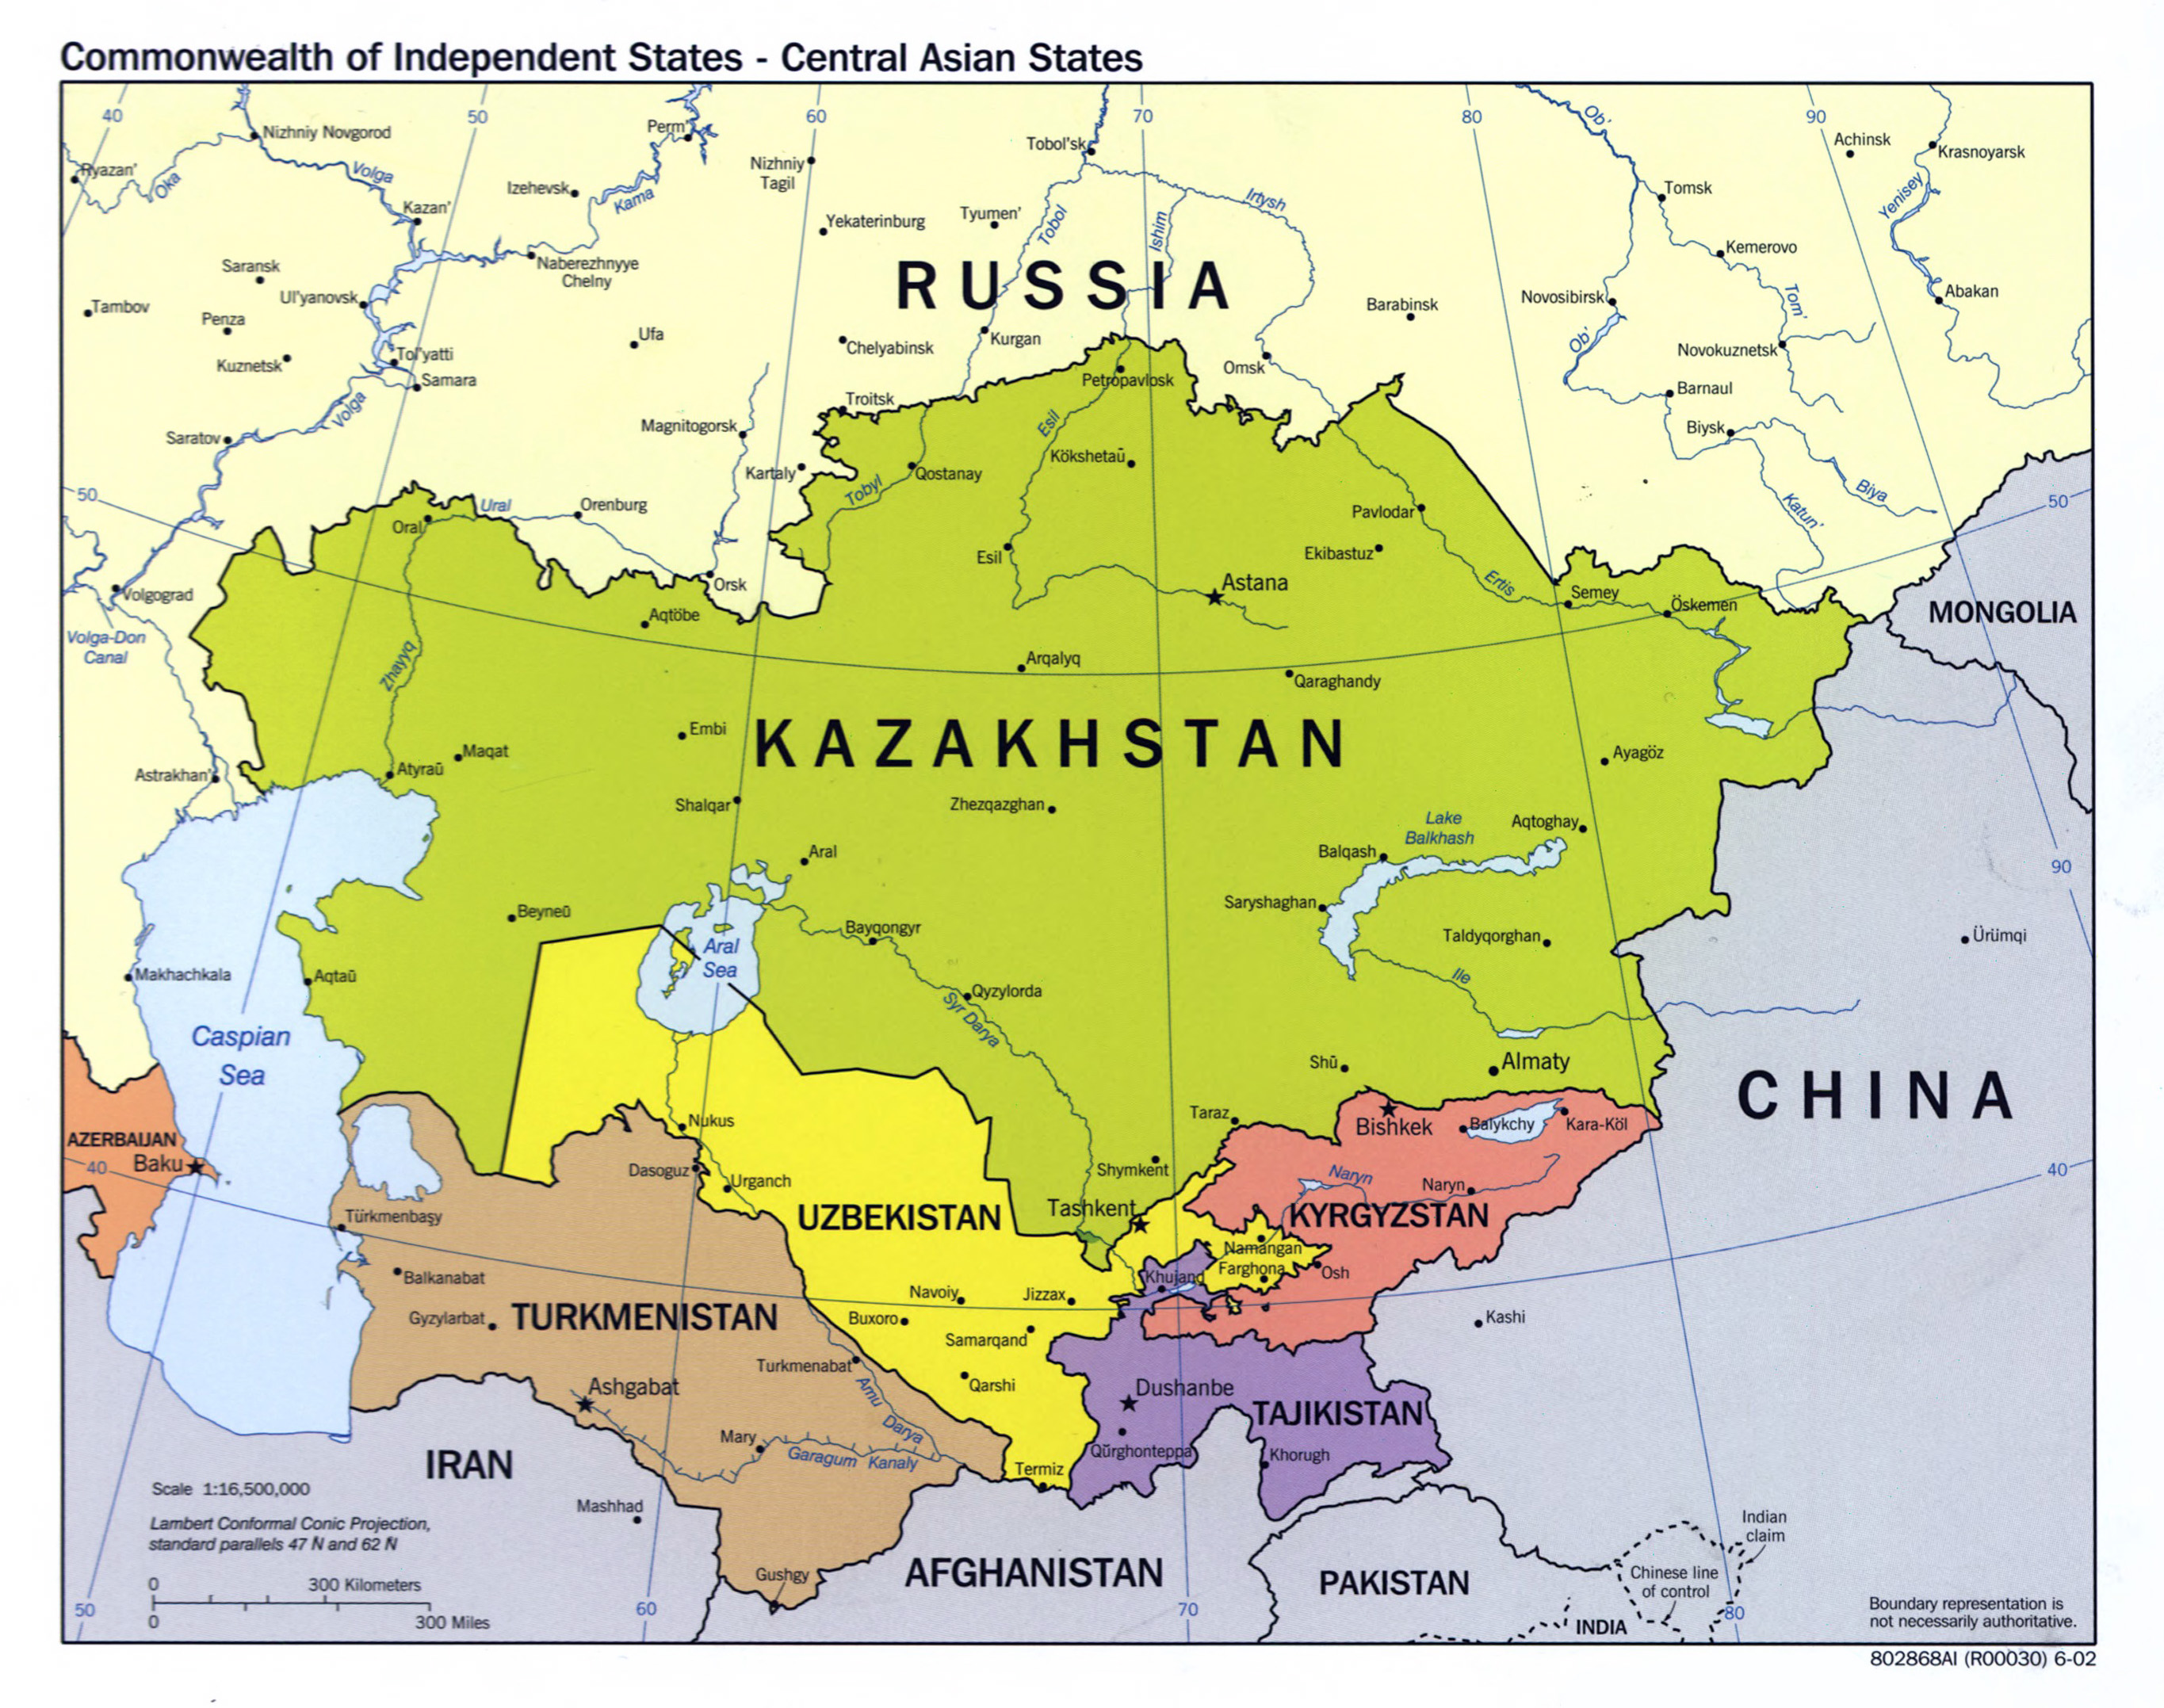 Large Scale Political Map Of Central Asian States